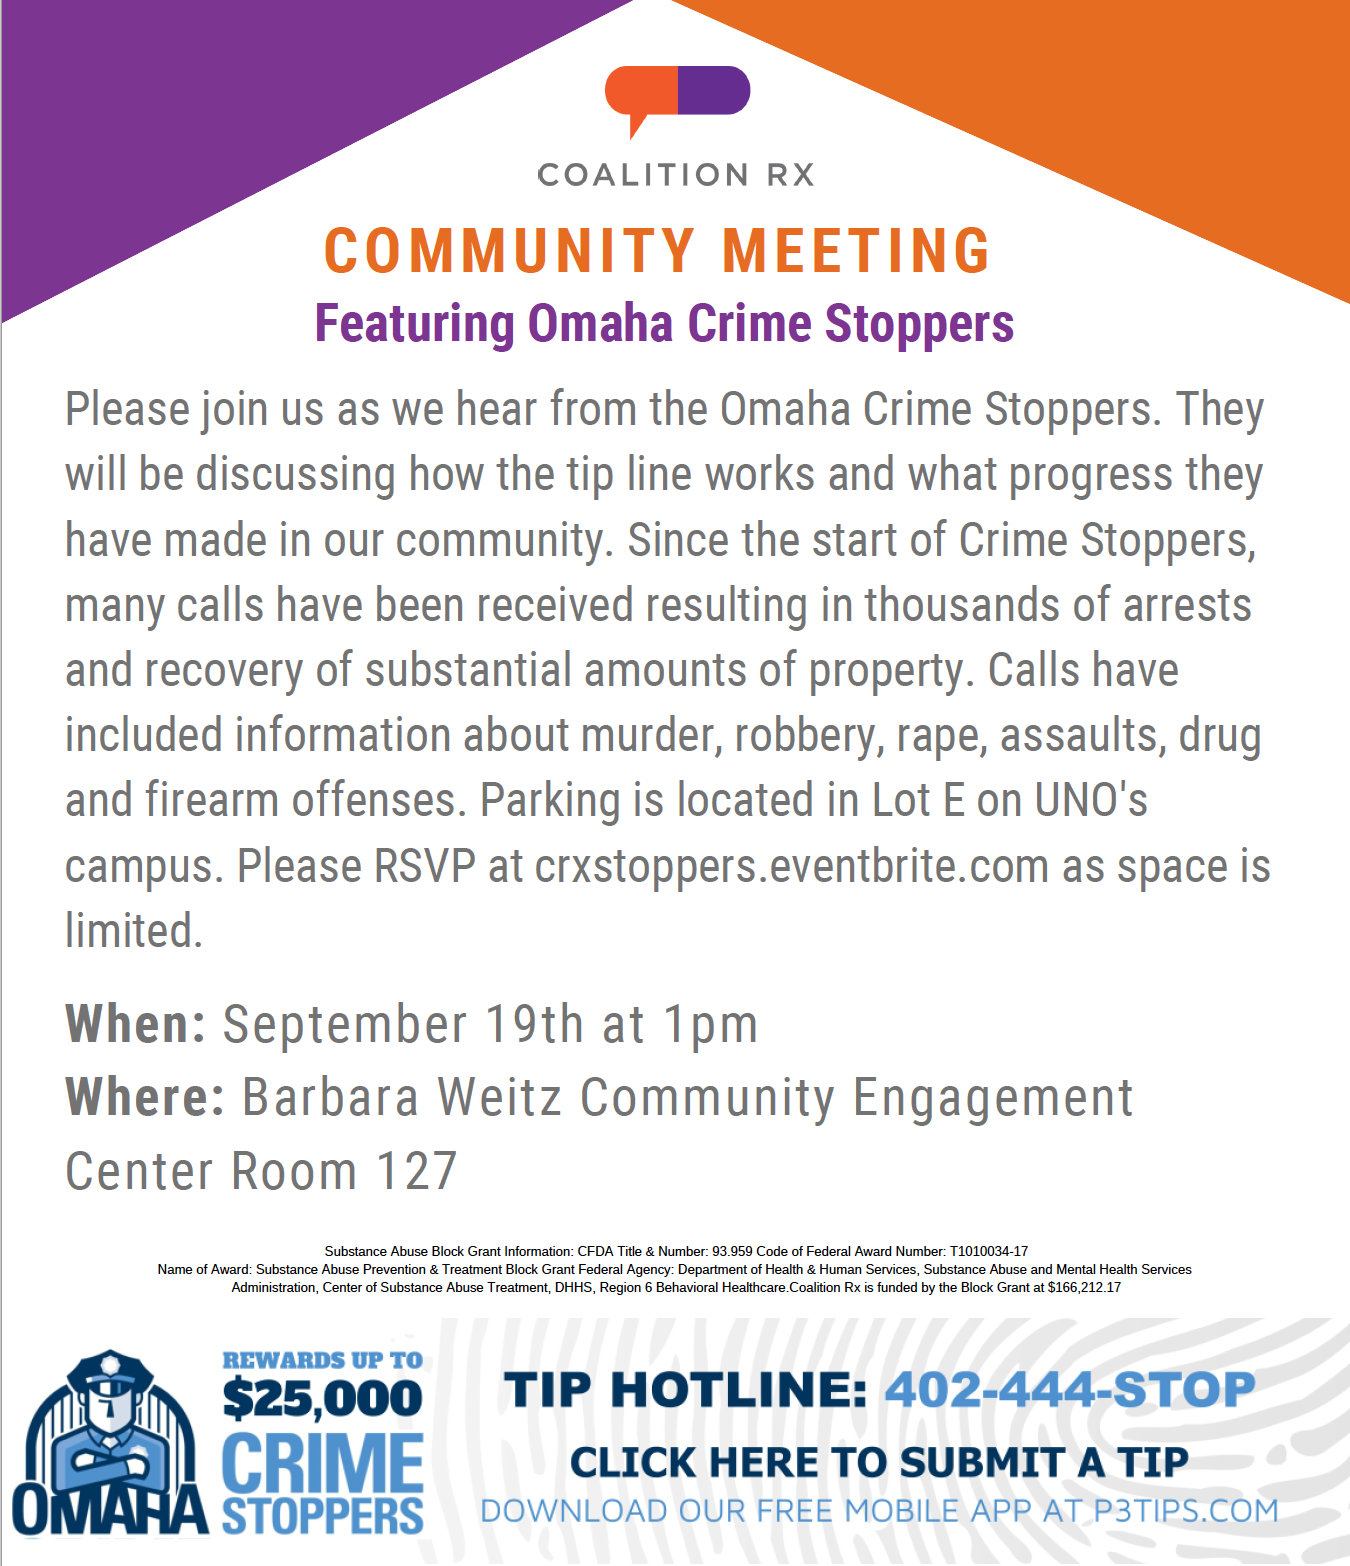 Community Meeting with Crime Stoppers